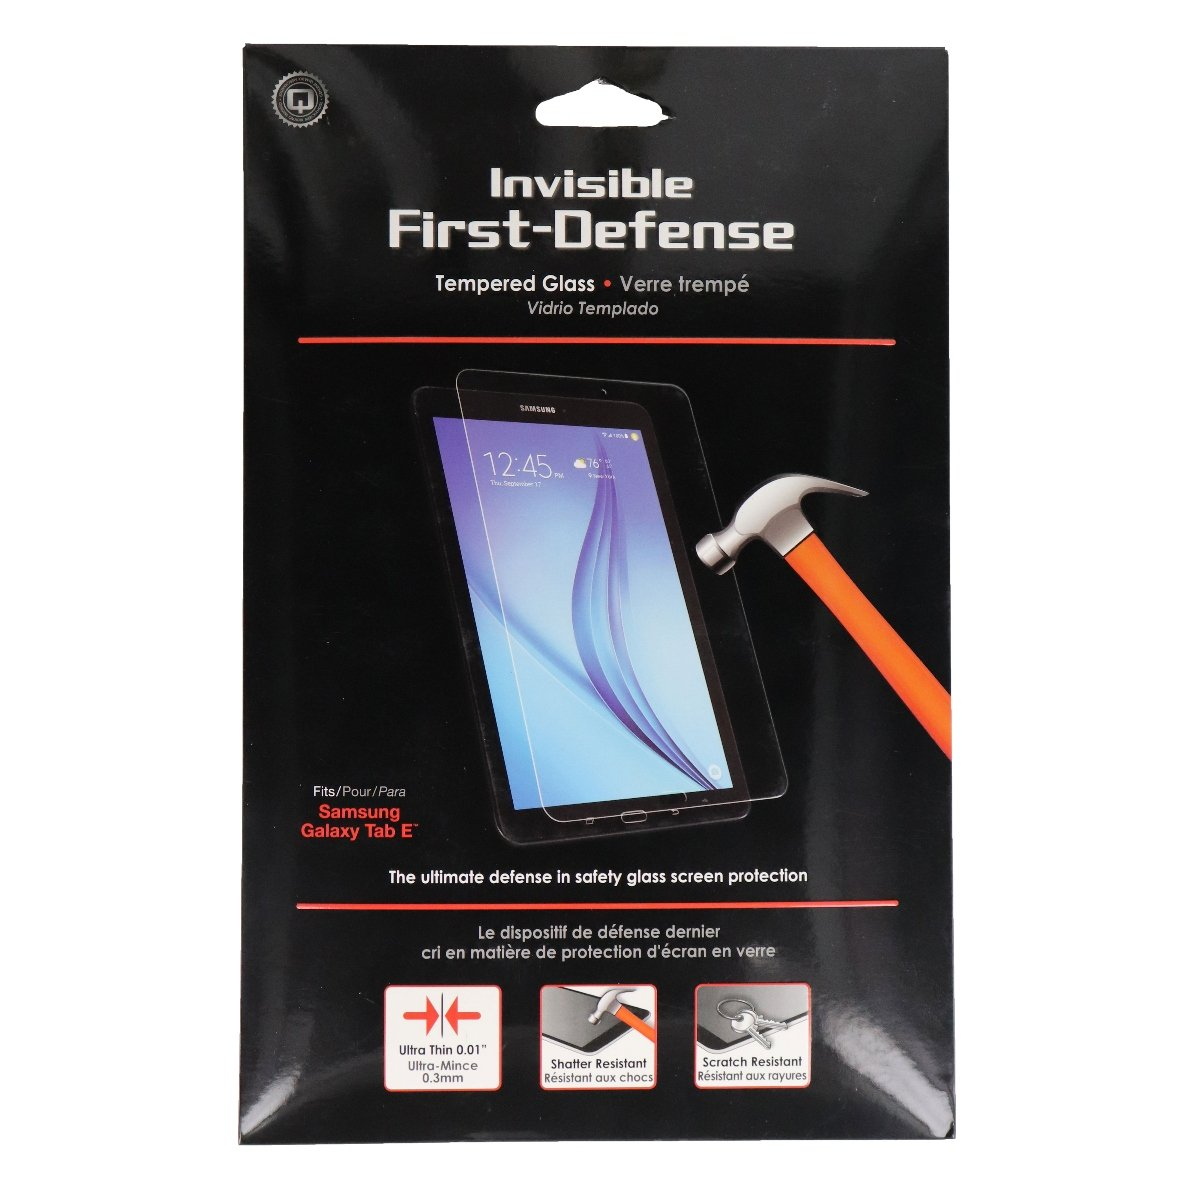 2x iLLumi AquaShield Clear Screen Protector Cover for Dell Venue 10 7000